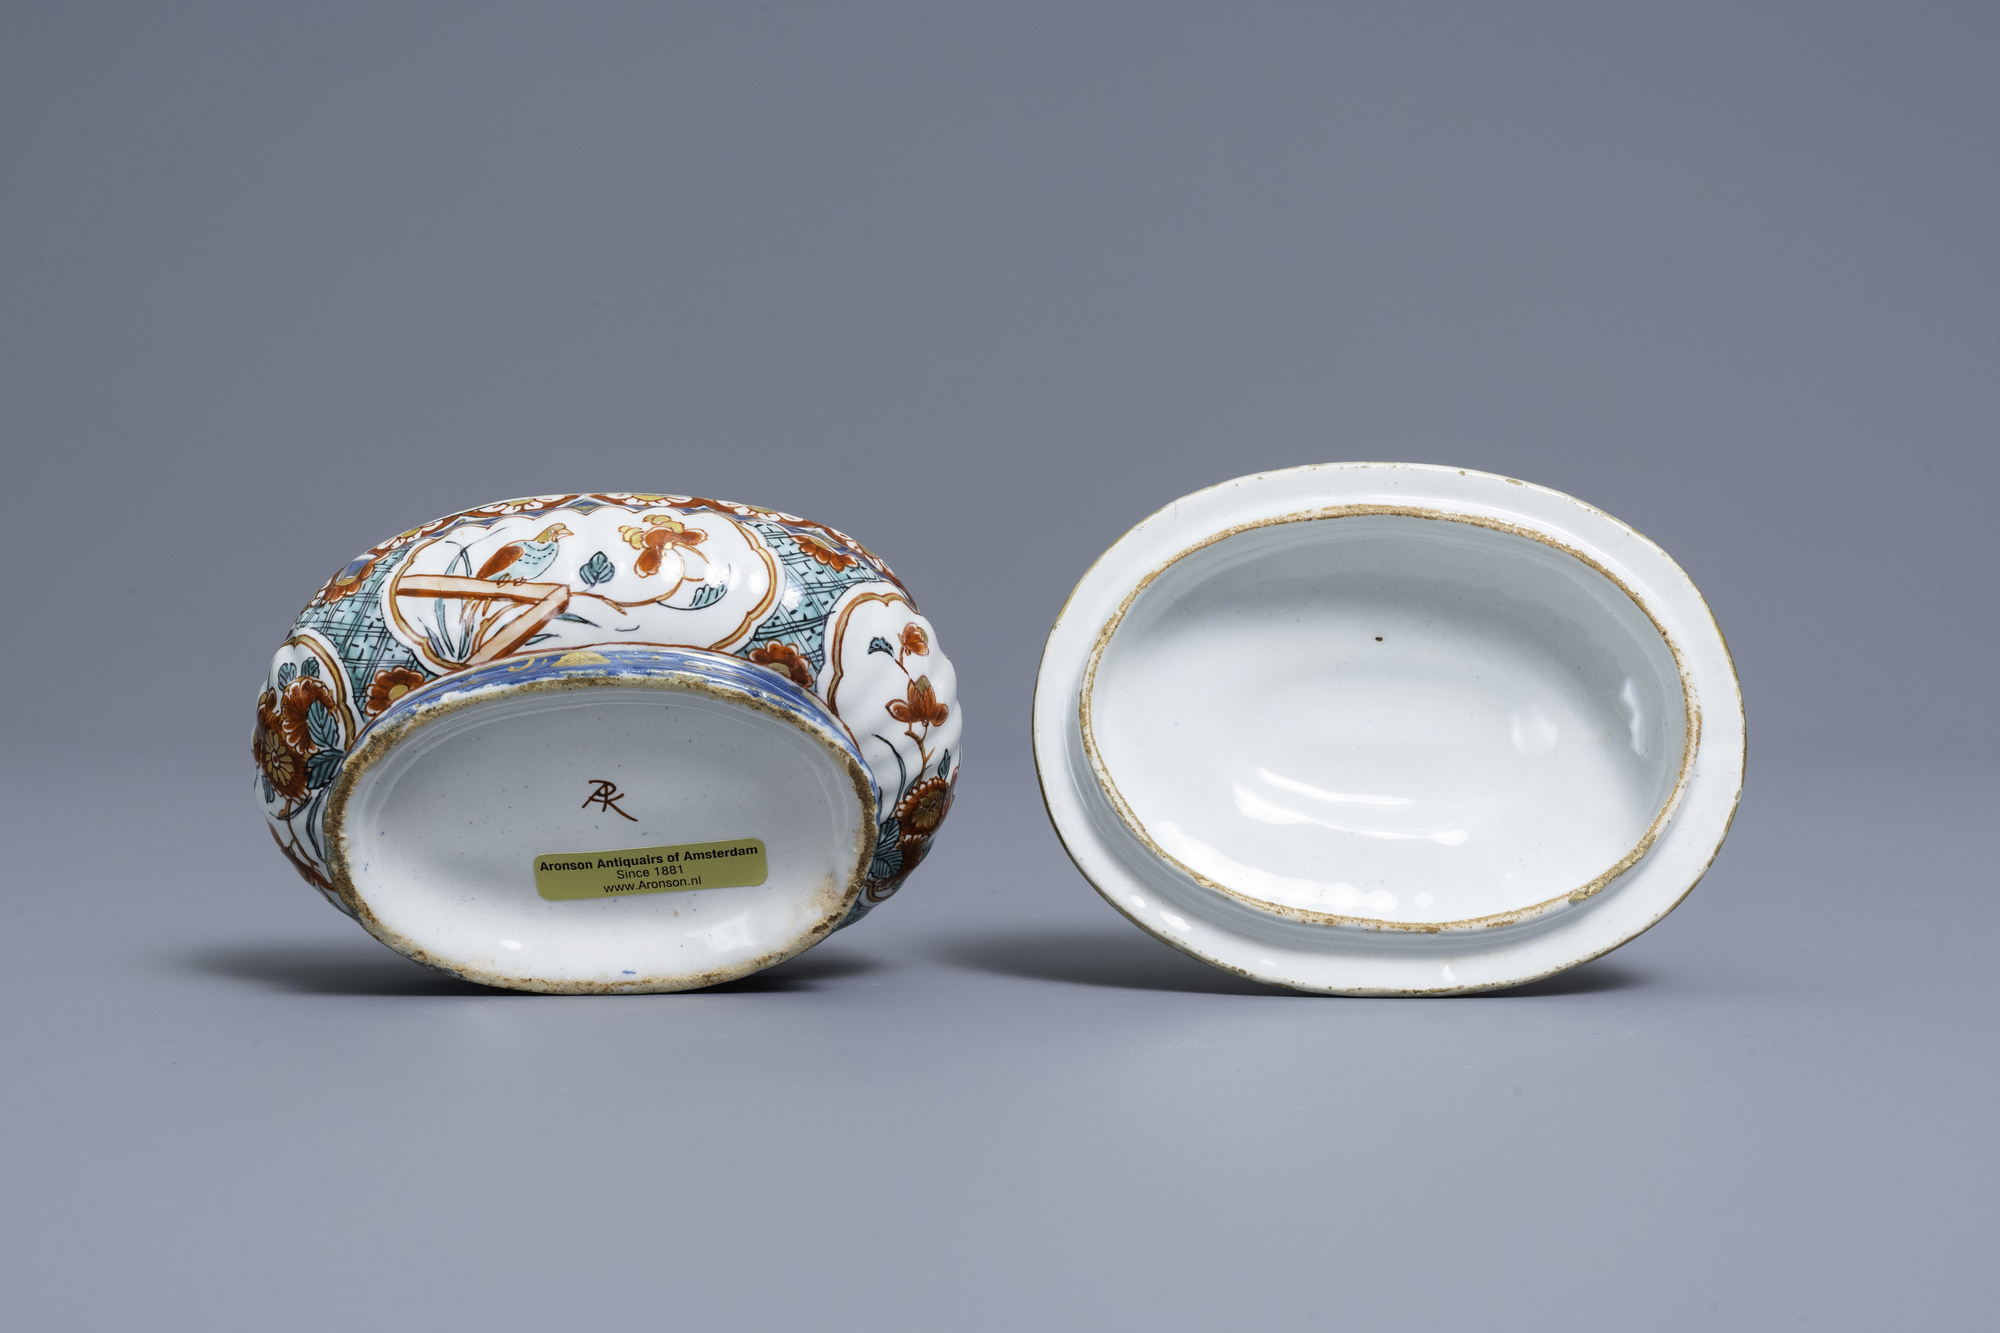 A polychrome and gilded Dutch Delft spice box and cover, early 18th C. - Image 7 of 7